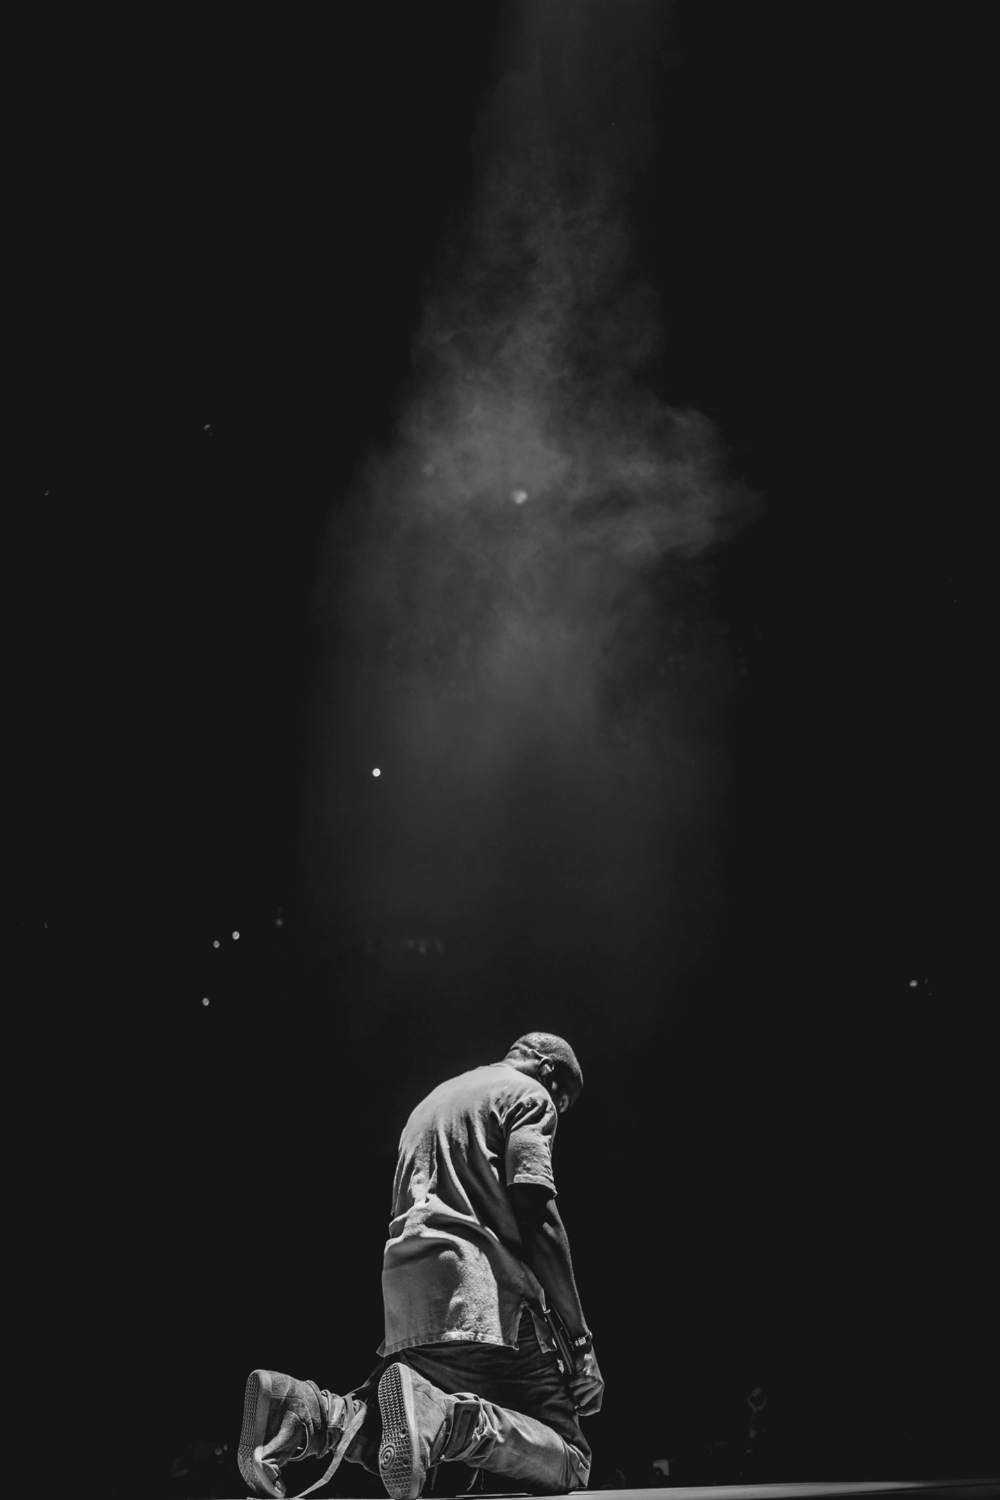 The Kanye Story In 2020 Kanye West Wallpaper Yeezus Tour Kanye West Albums